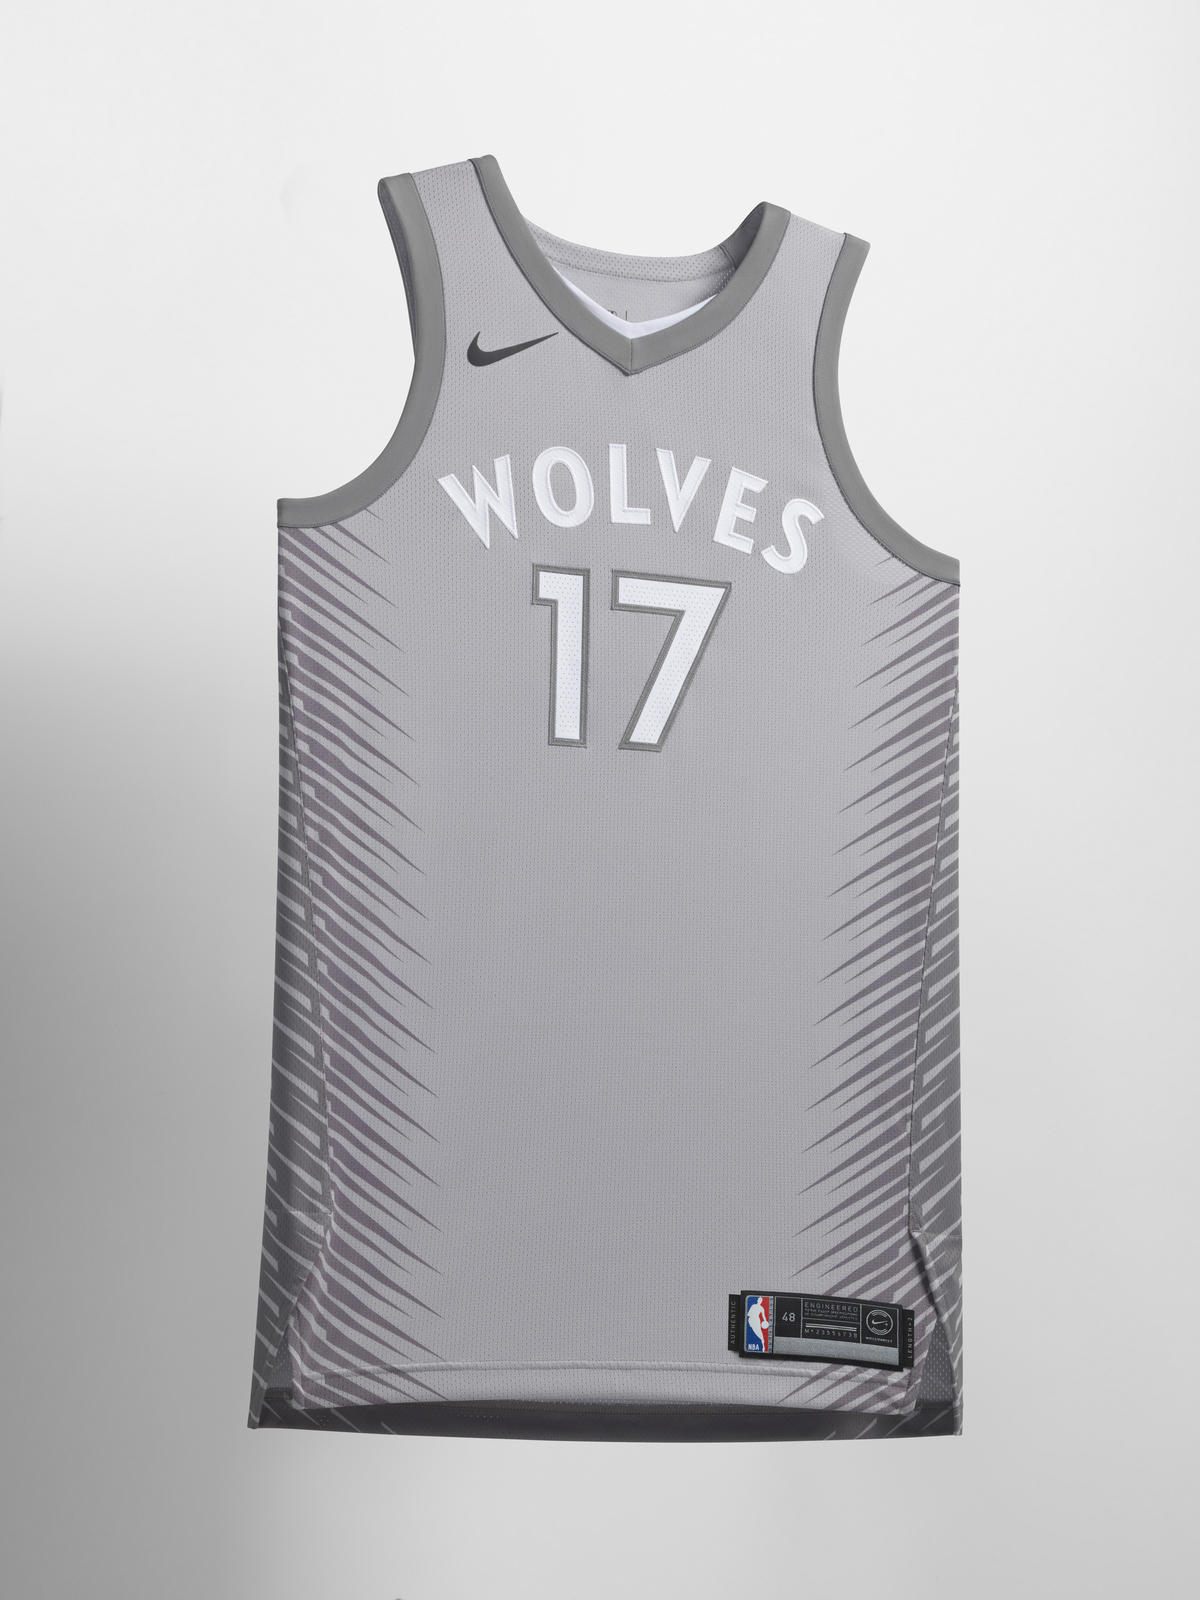 Minnesota Timberwolves City Edition jersey